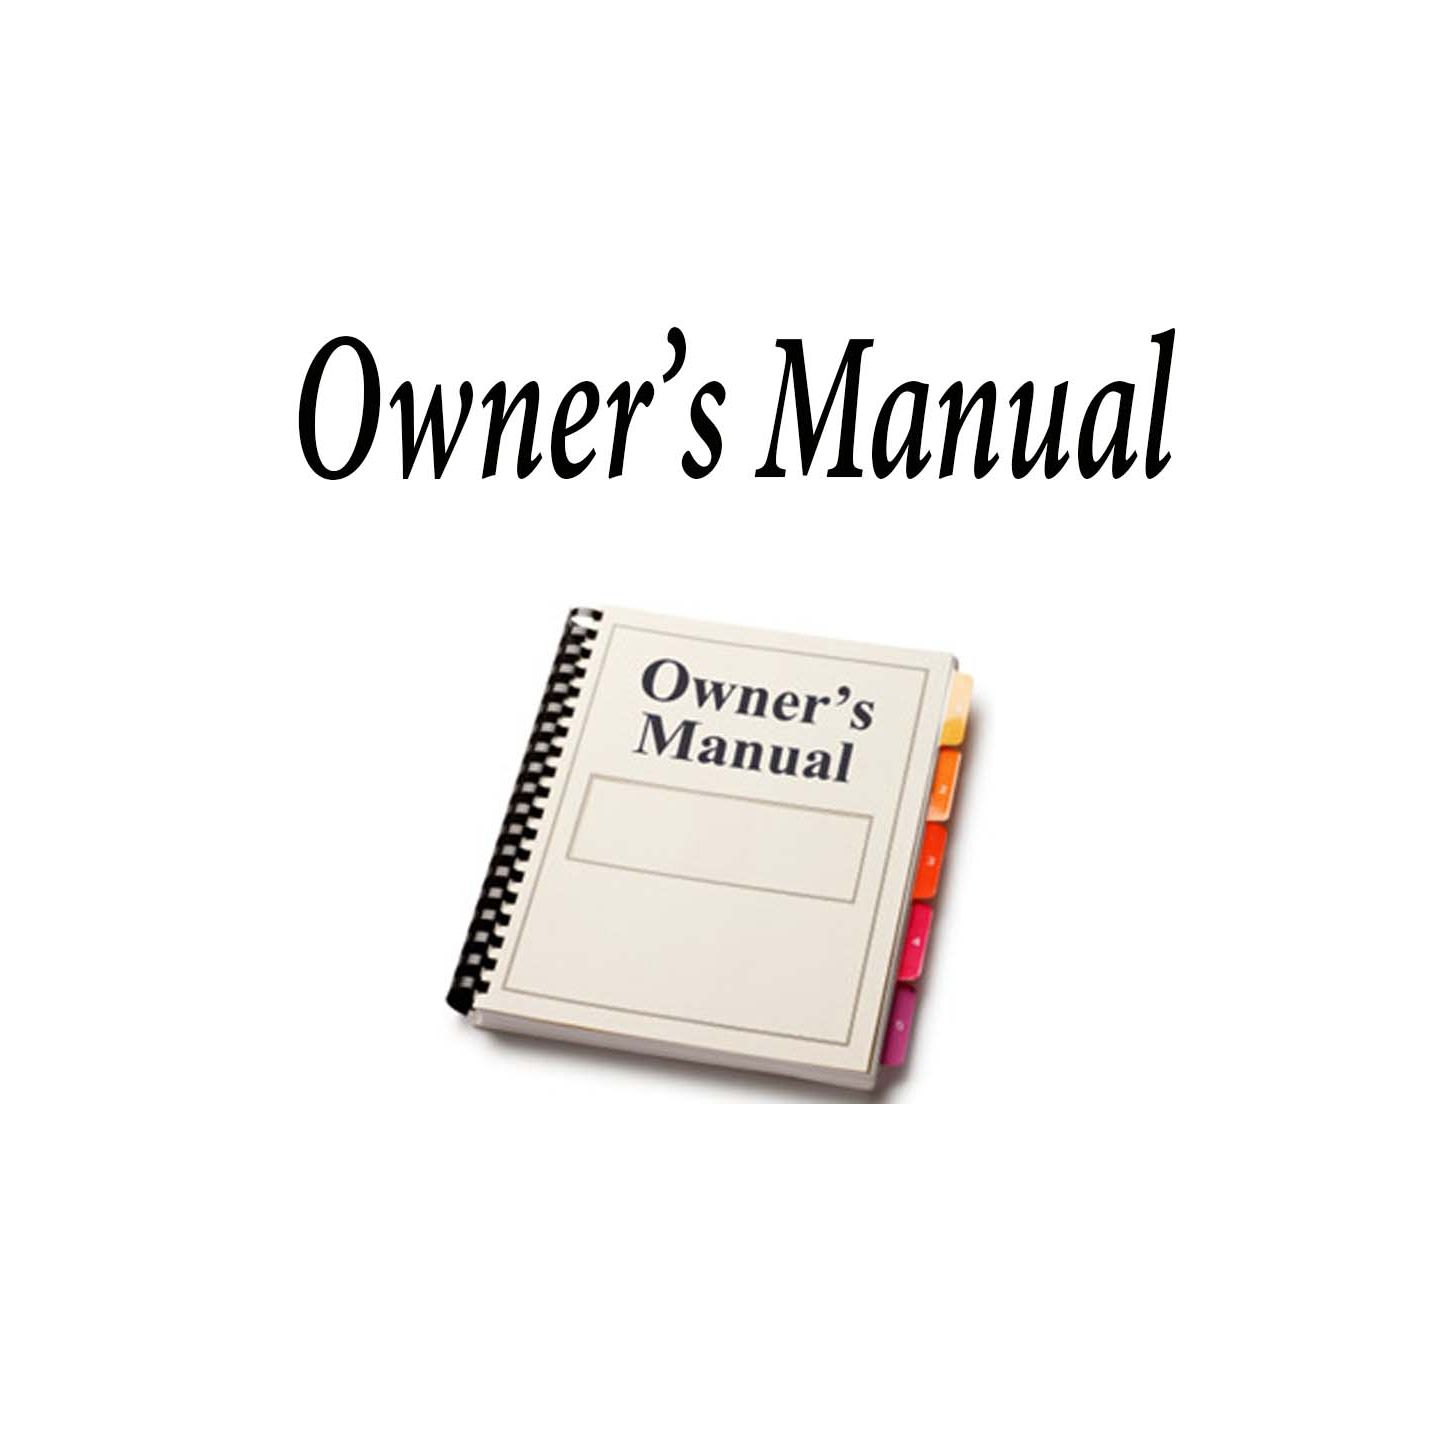 OMC29LXHDLE - Owner's Manual For the Cobra C29LXHDLE Radio